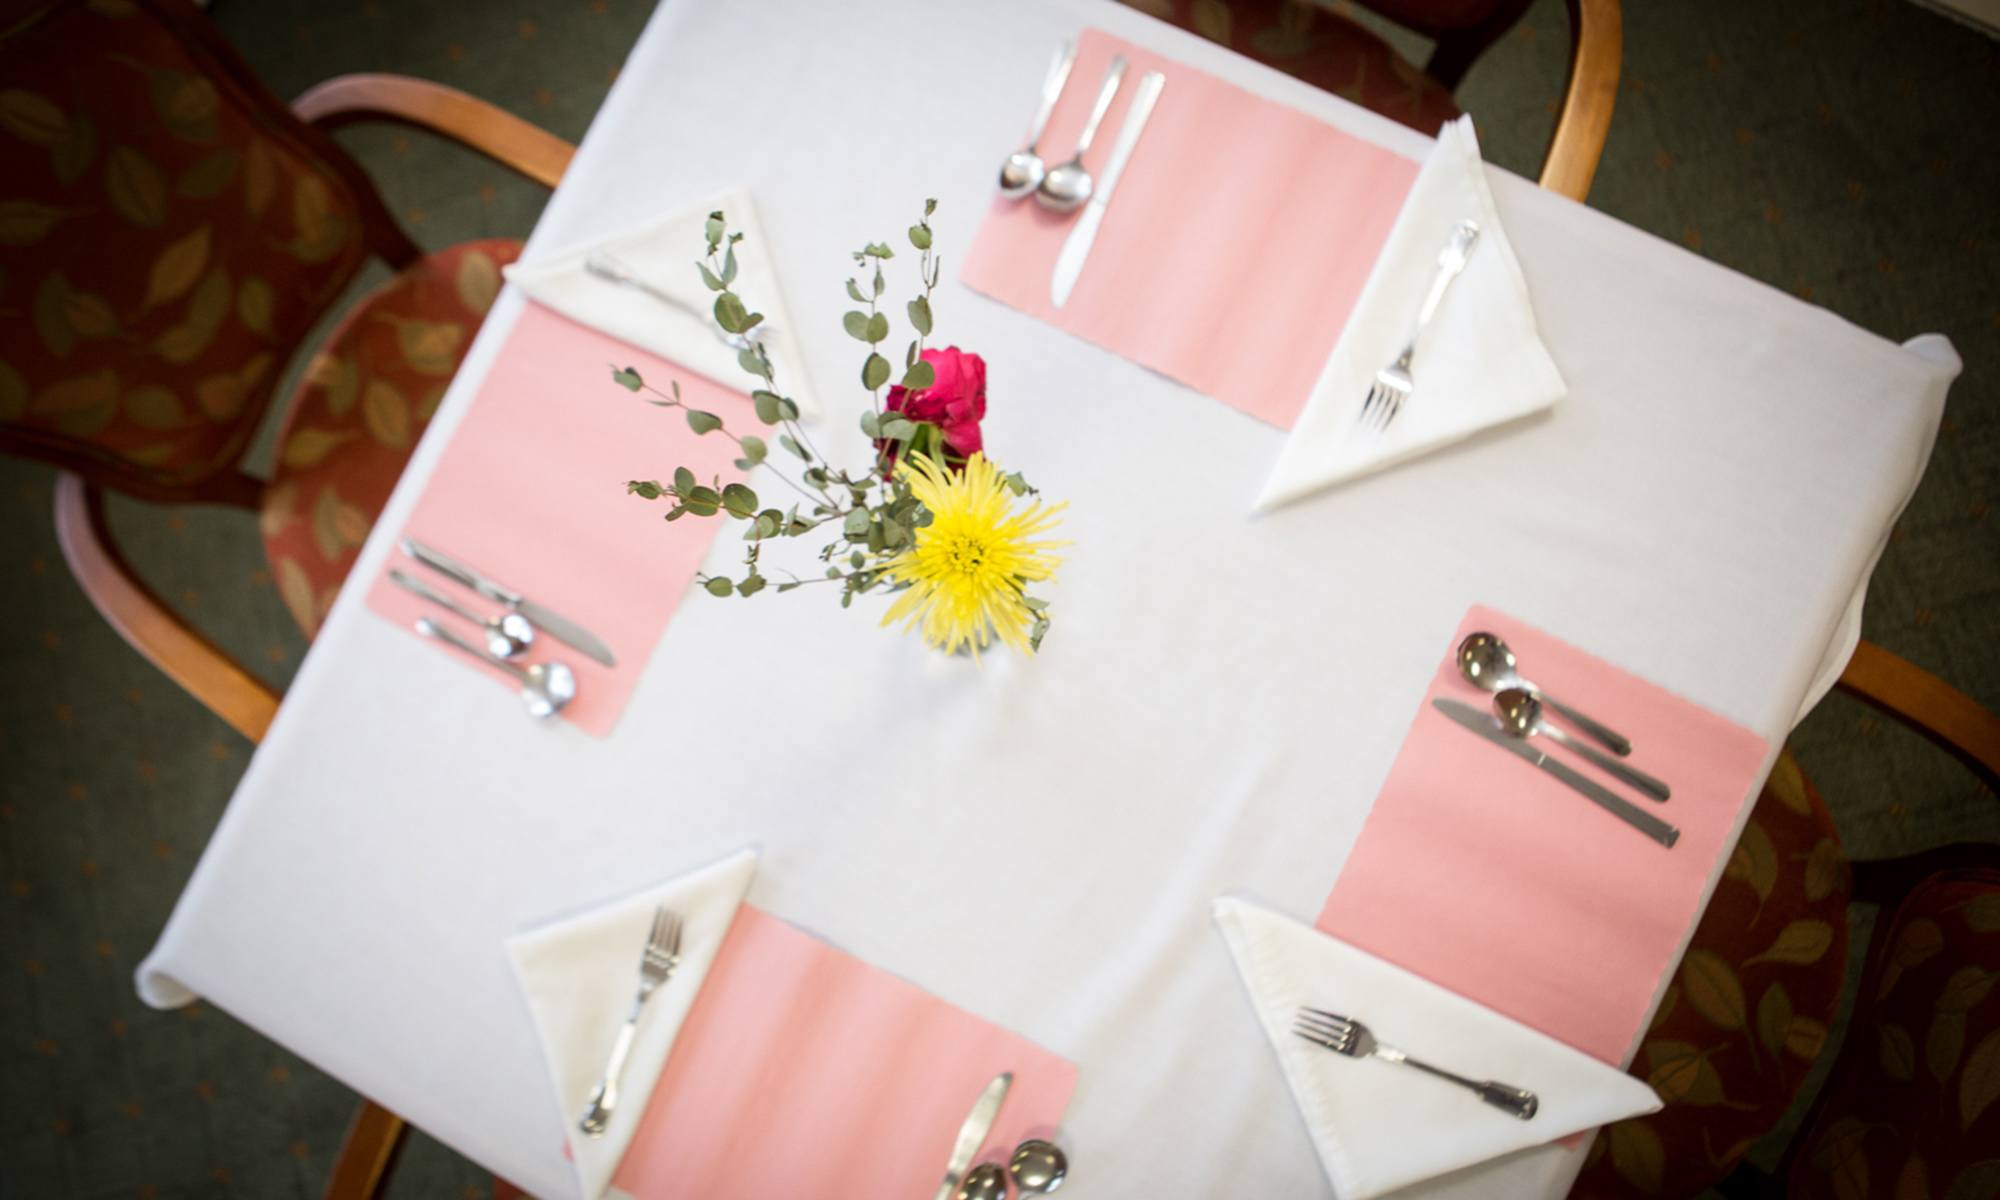 Senior living in Marquette shows off their dining tables